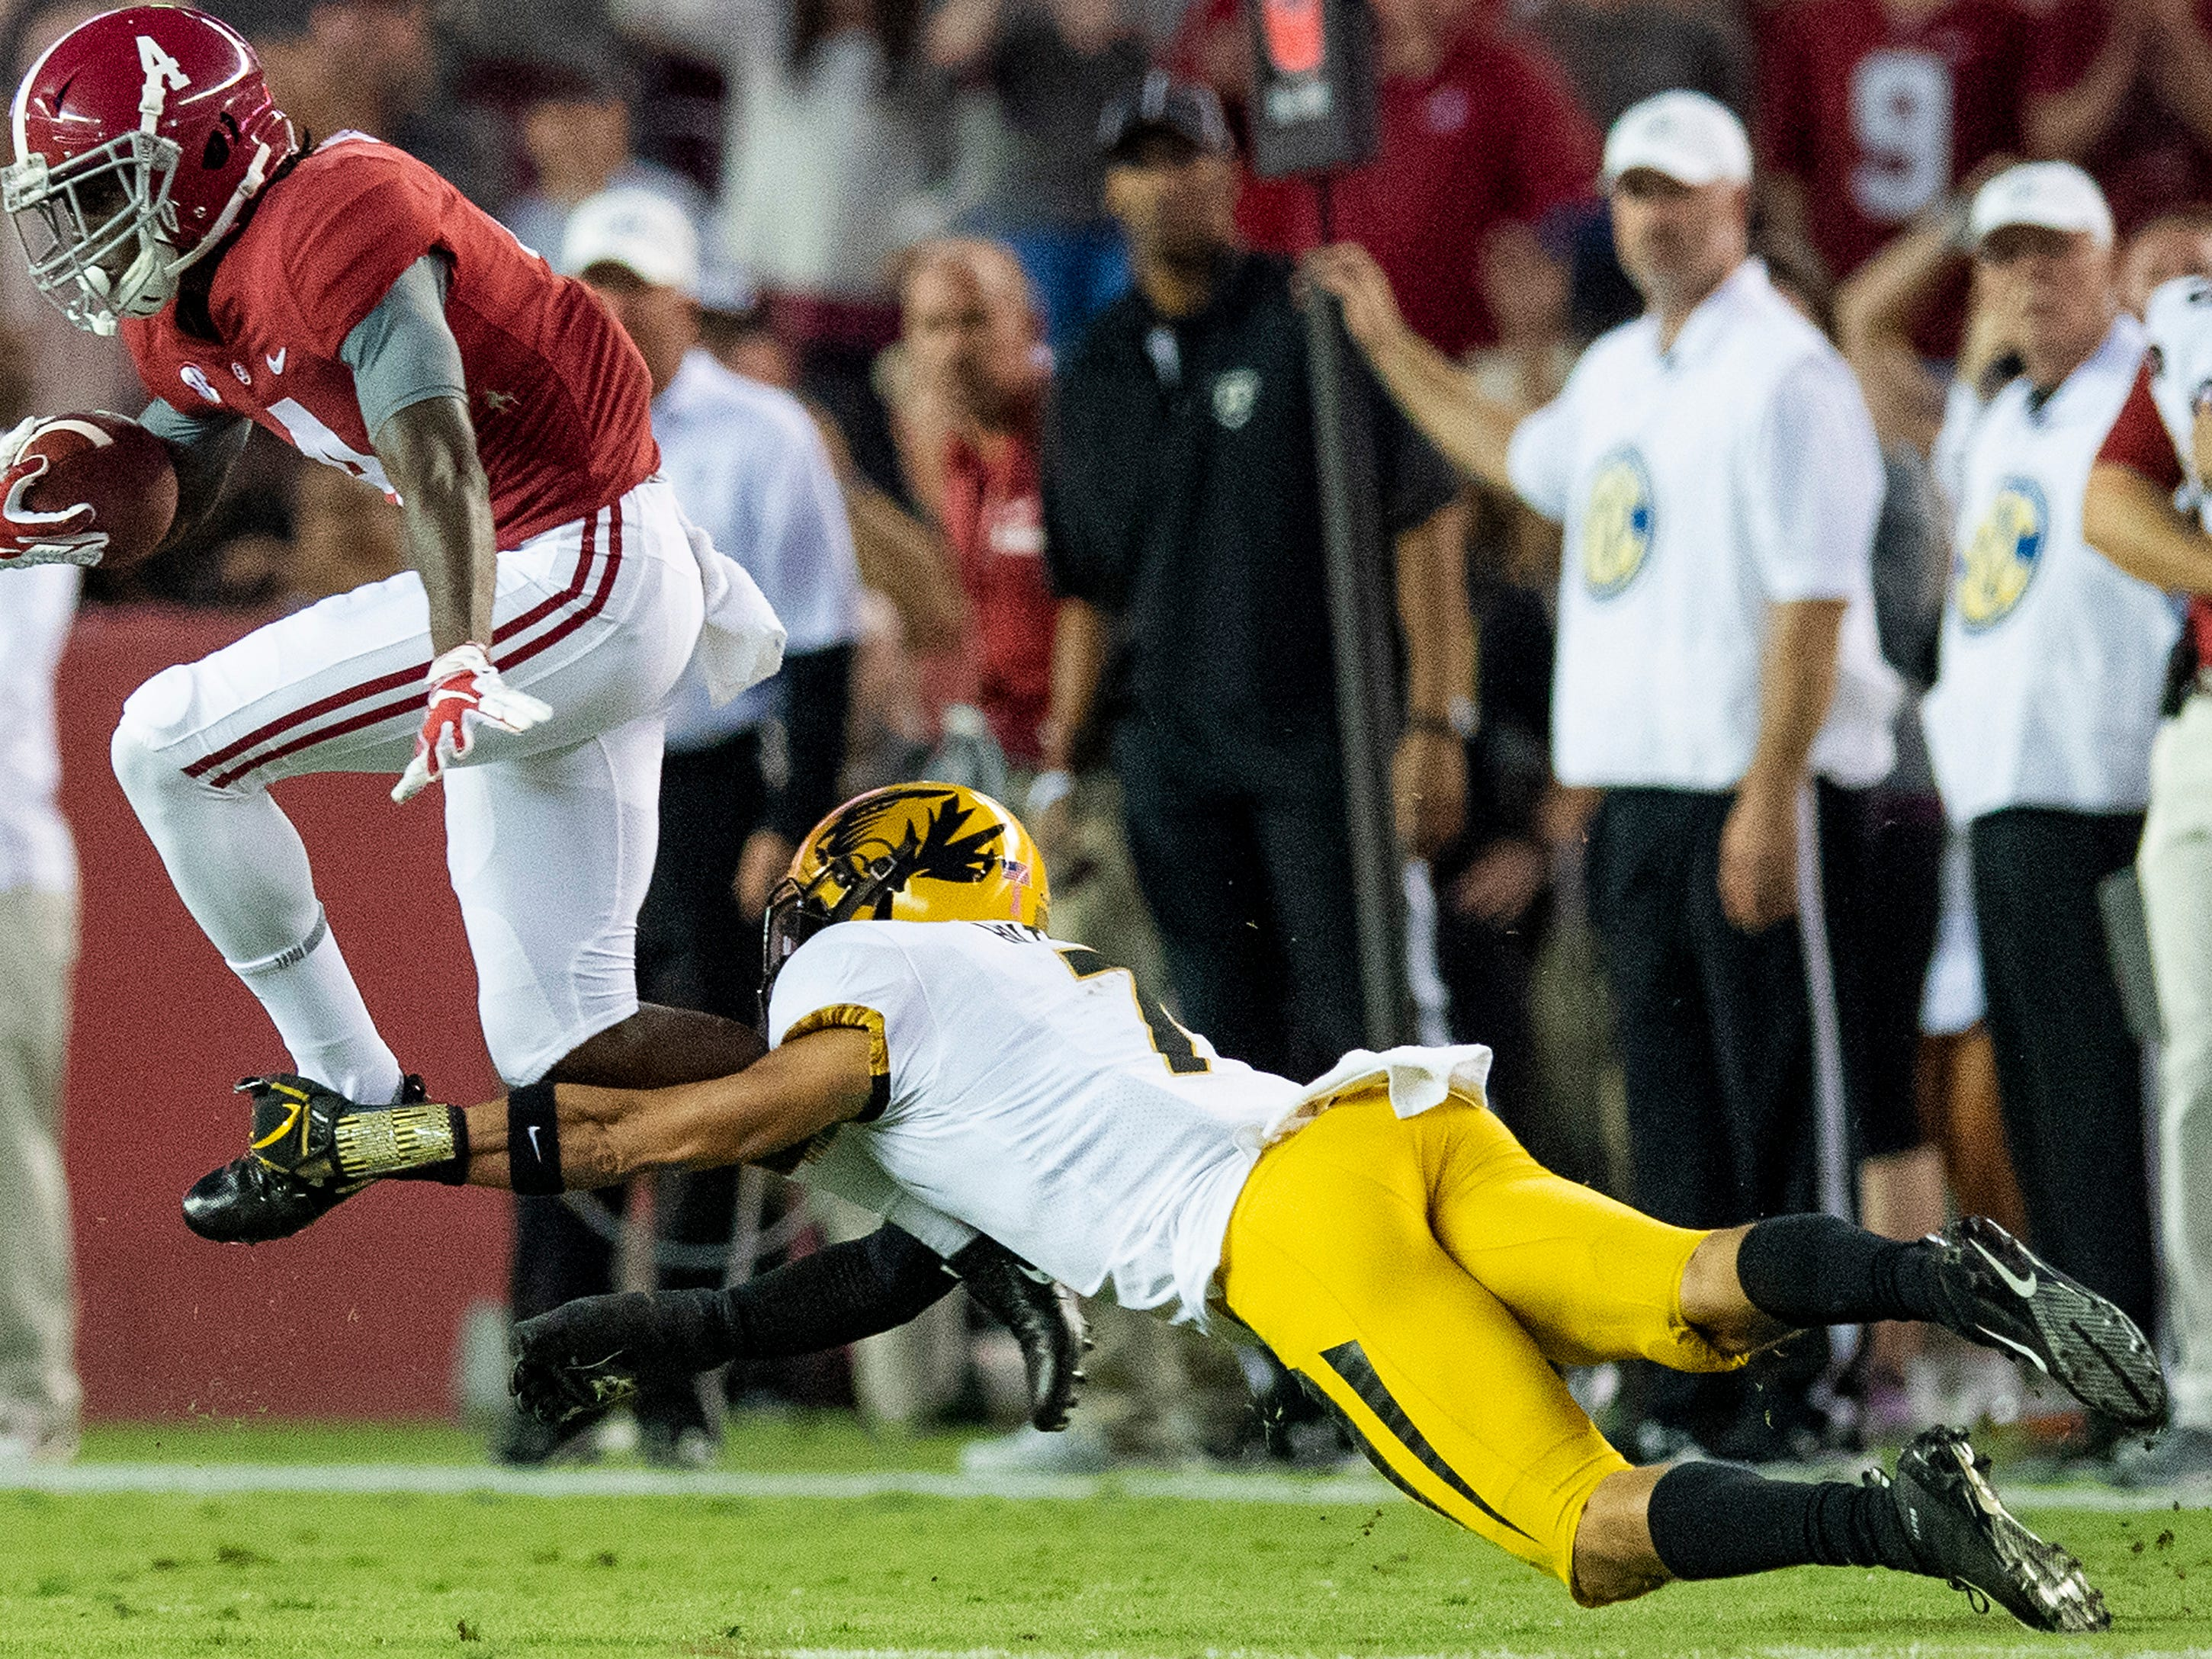 Alabama wide receiver Jerry Jeudy (4) leaps out of the grasp of Missouri safety Cam Hilton (7) in first half action at Bryant Denny Stadium in Tuscaloosa, Ala., on Saturday October 13, 2018.